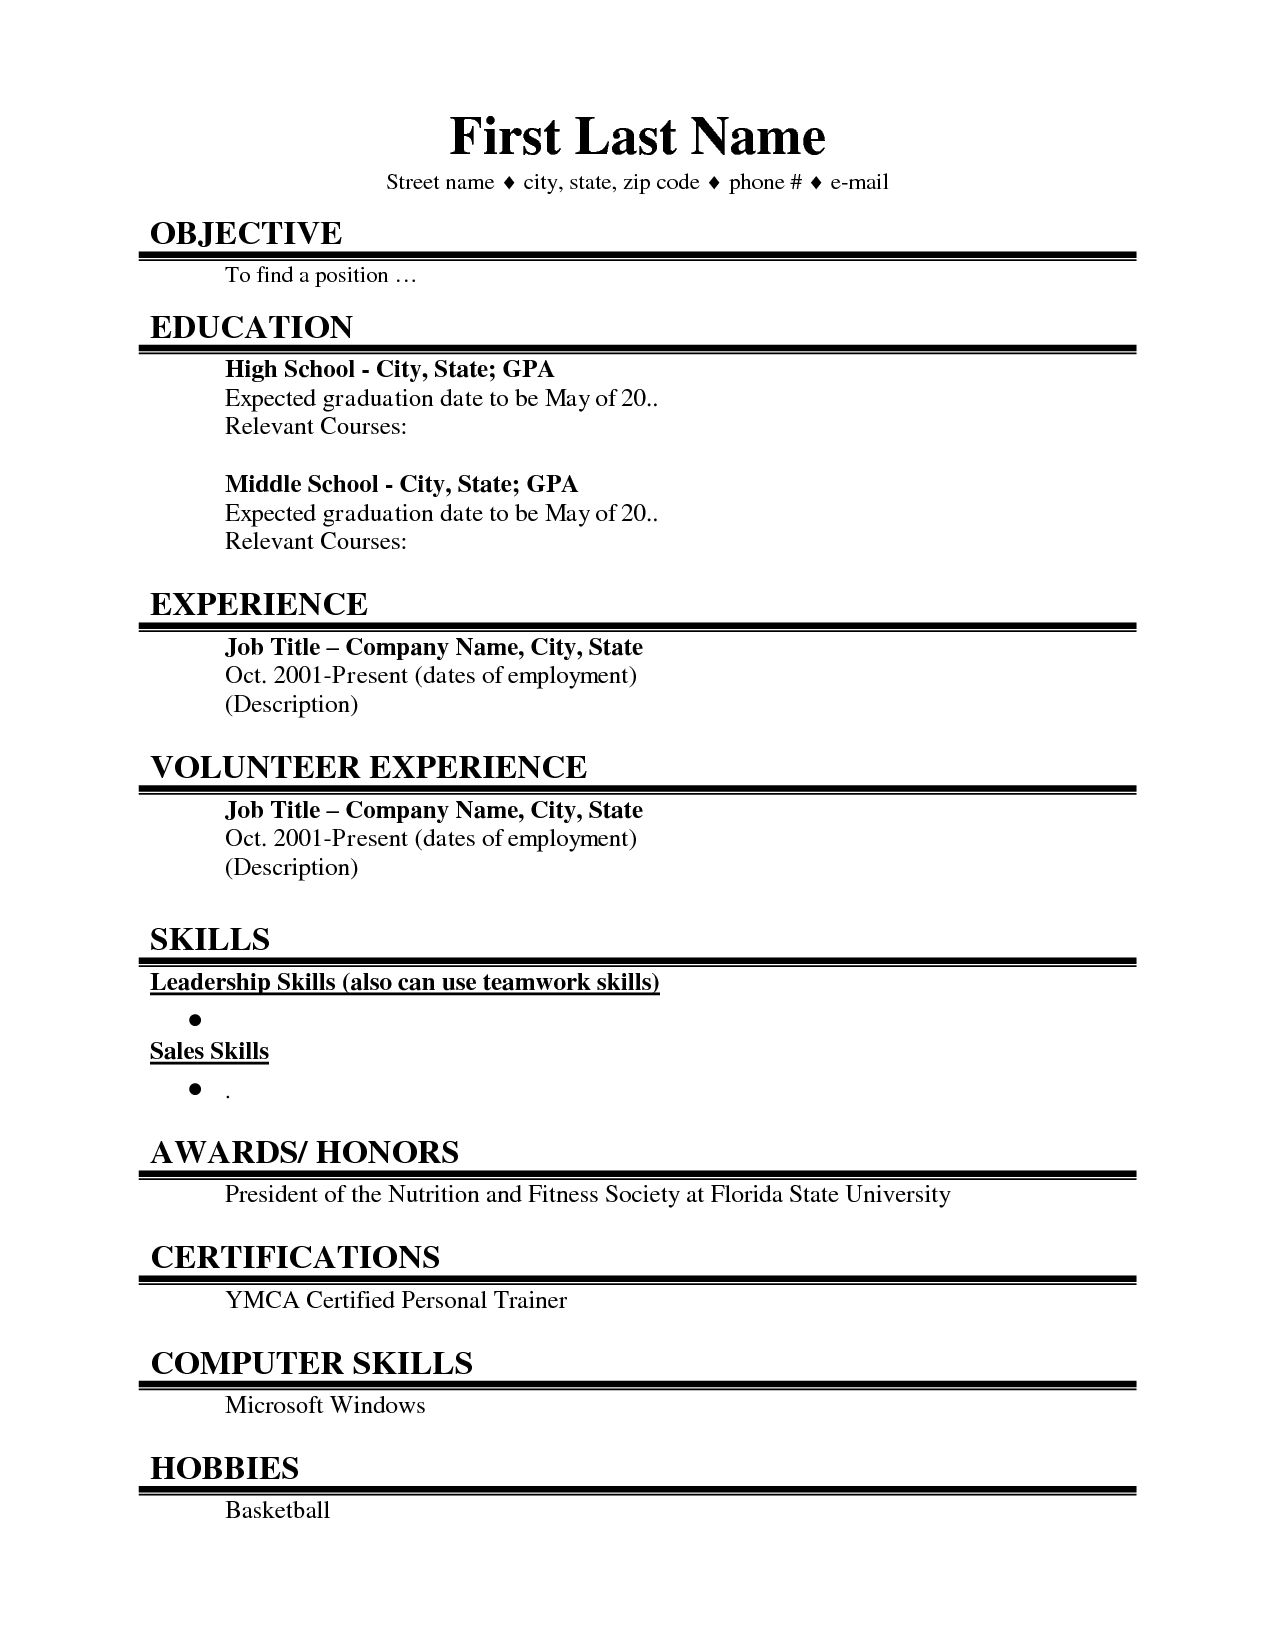 Format For A Resume For A Job First Job Resume Google Search Resume Pinterest